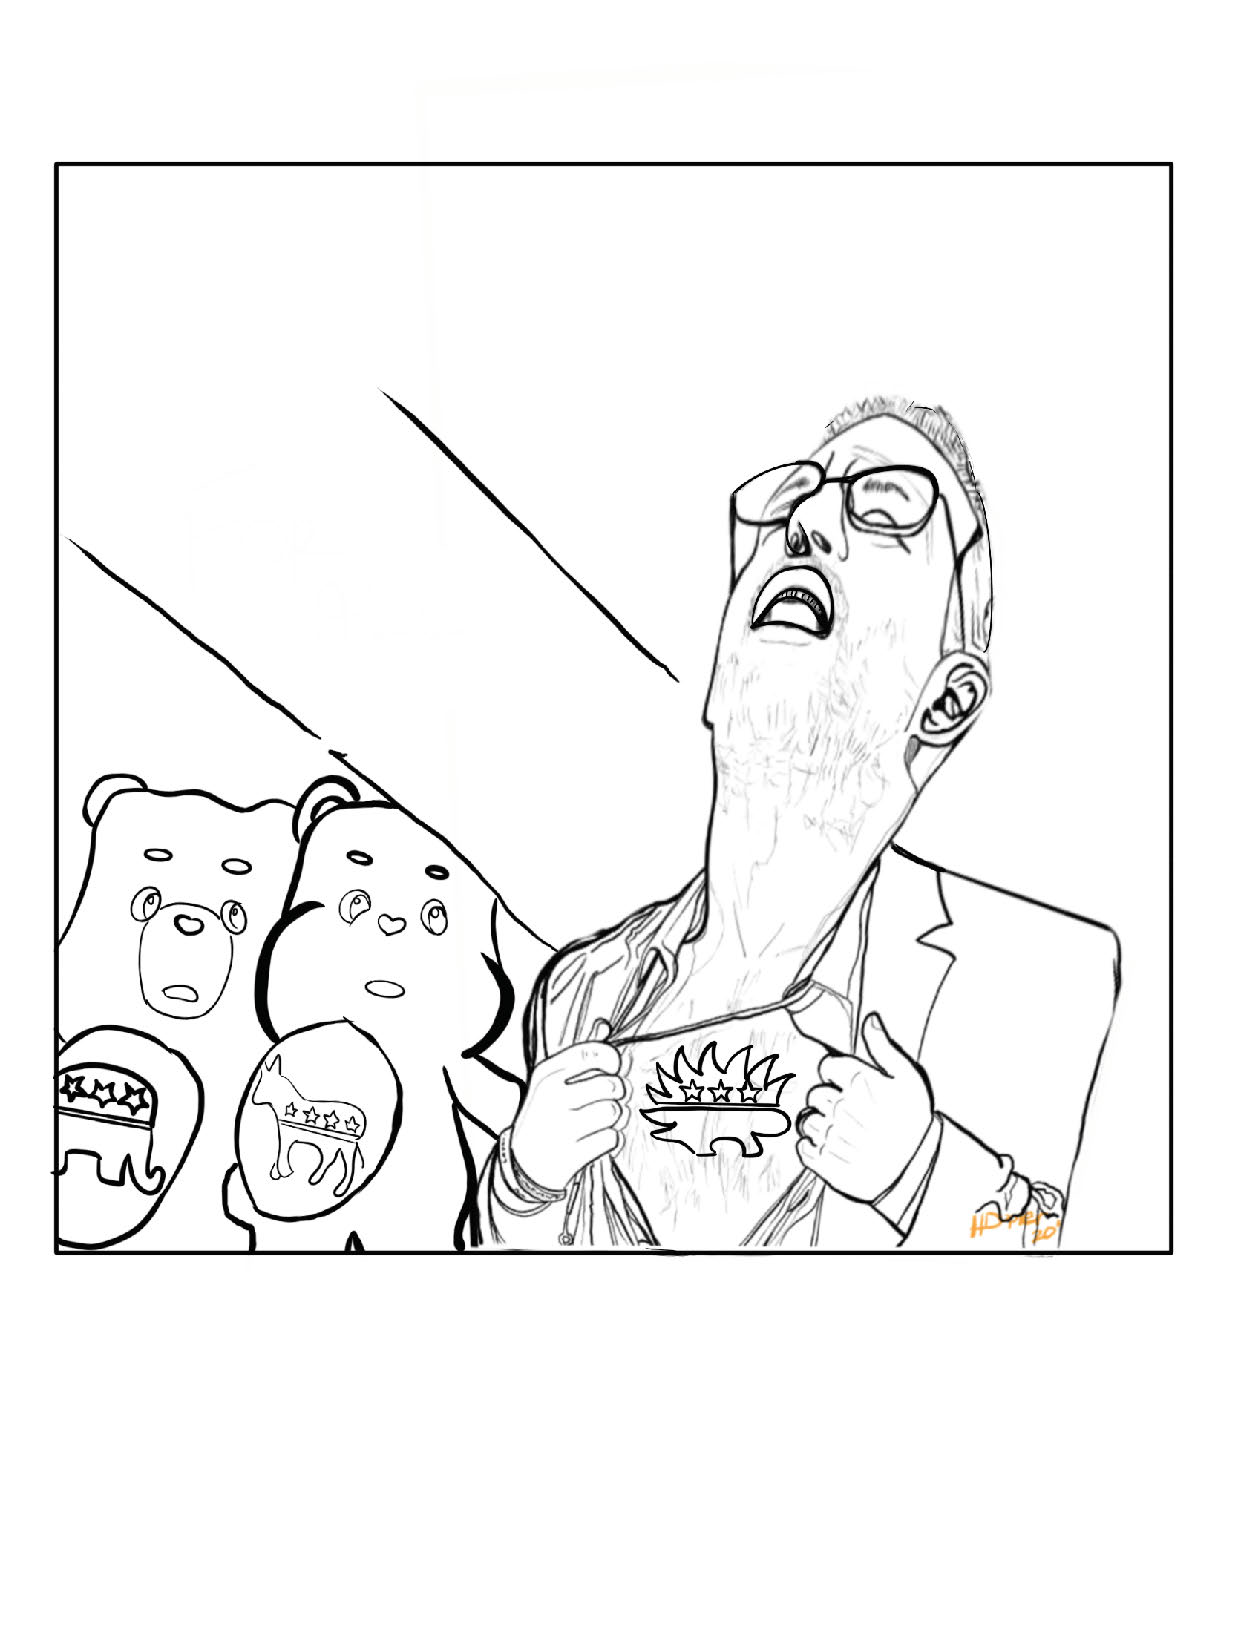 From Meme To White House-The Spike Cohen Coloring Book